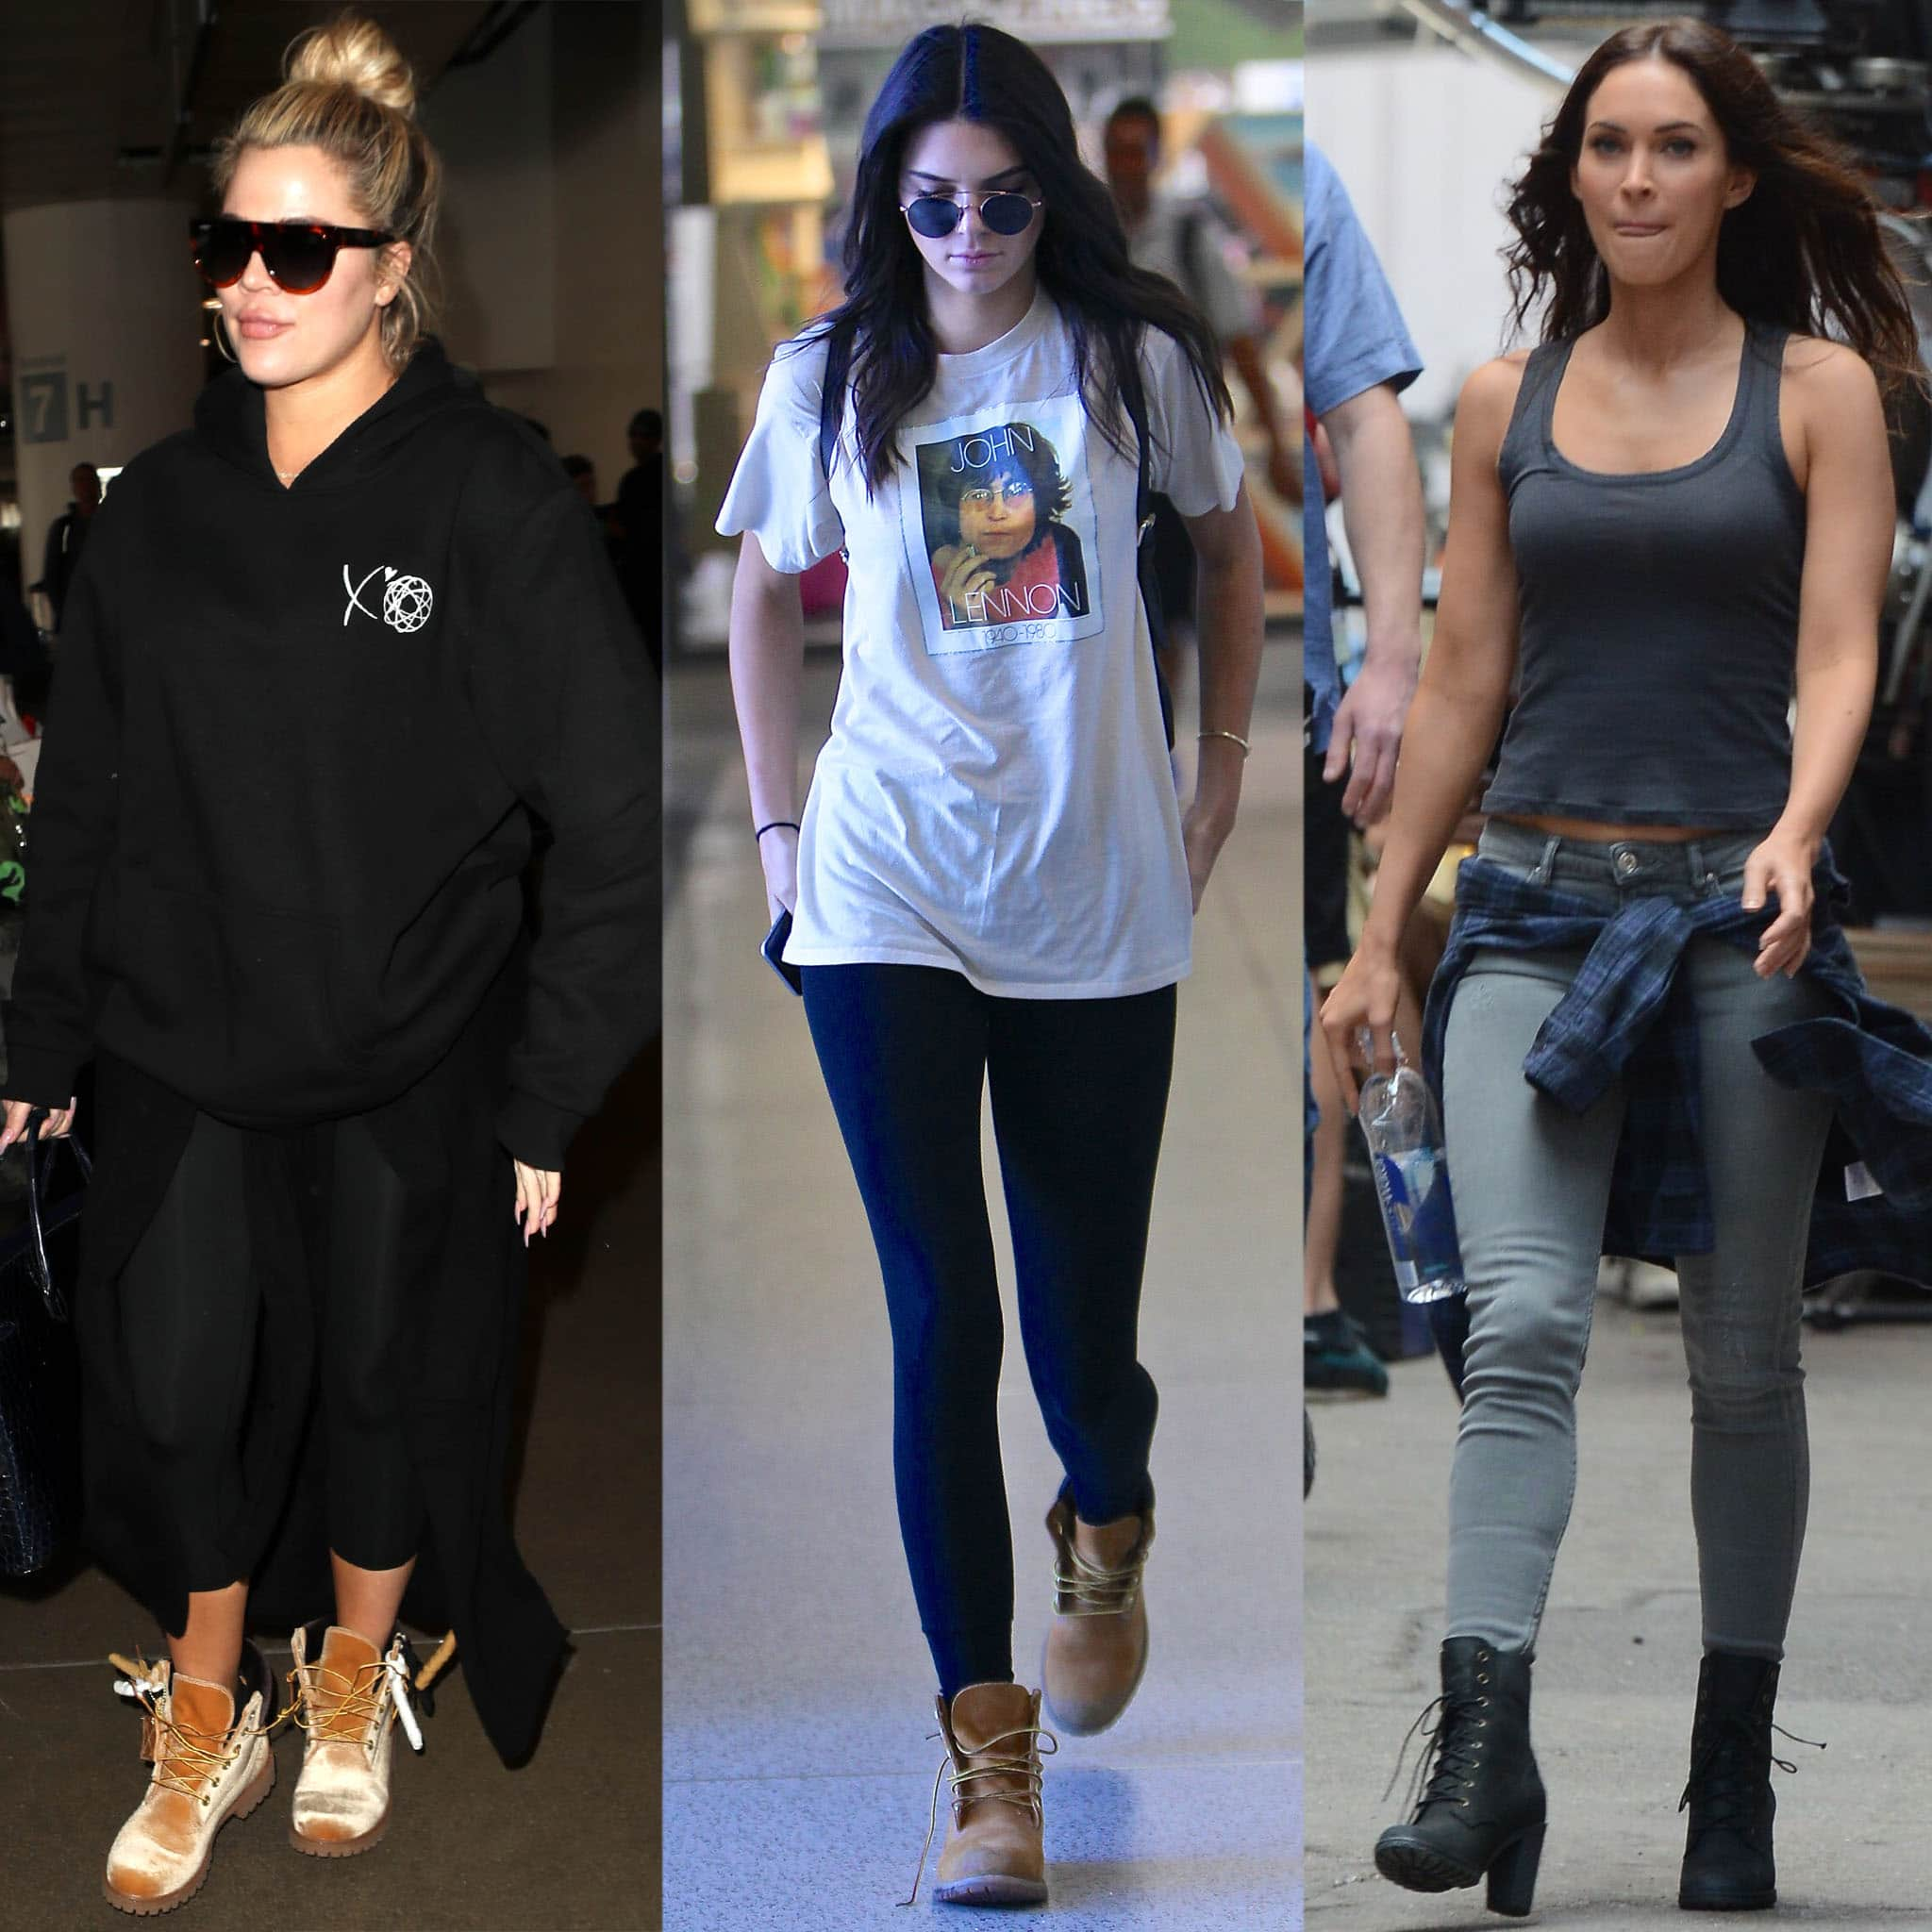 Khloe Kardashian, Kendall Jenner, and Megan Fox are just three of the many celebrity fans of Timberland boots